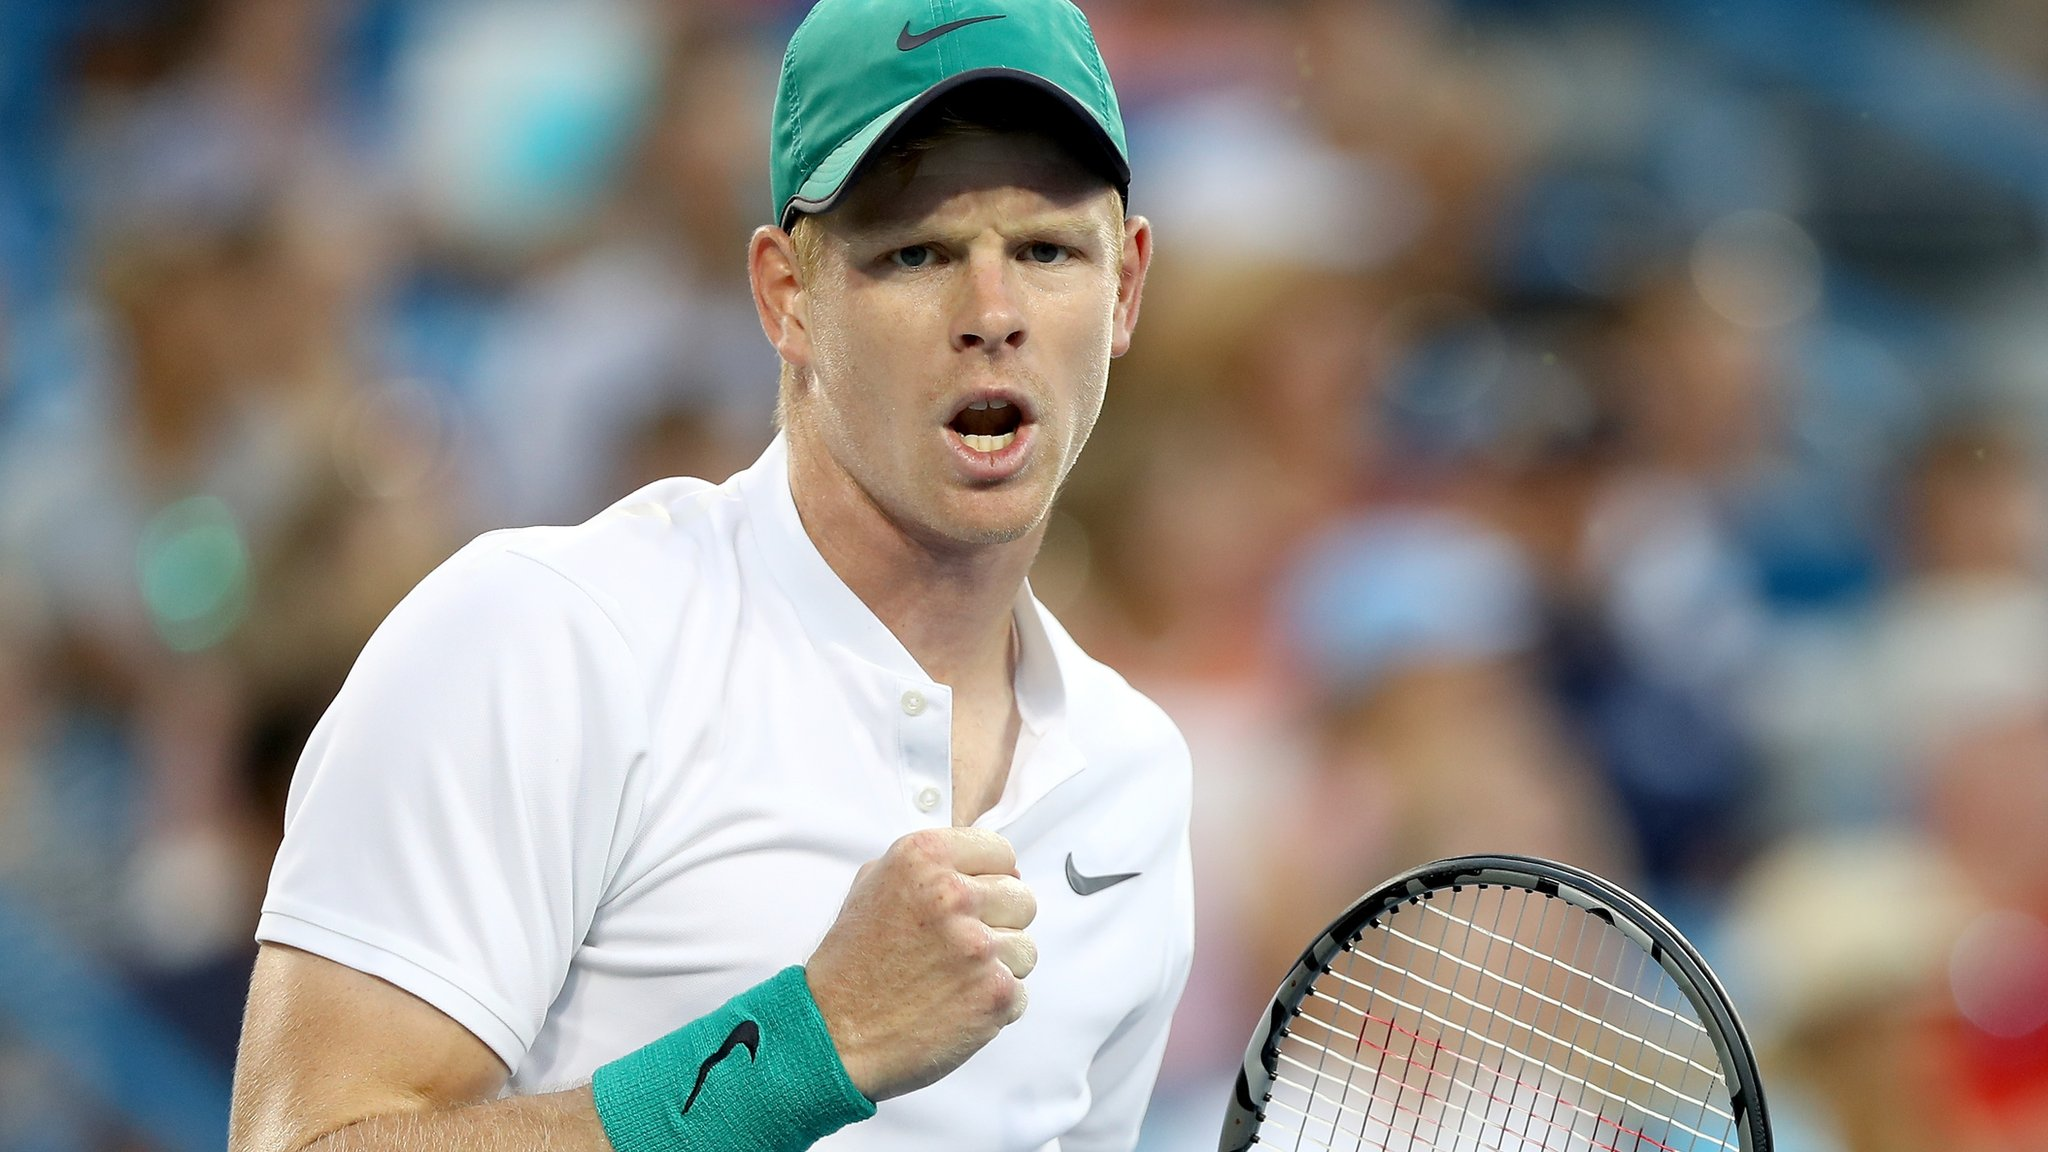 Kyle Edmund beaten by Denis Shapovalov in Cincinnati